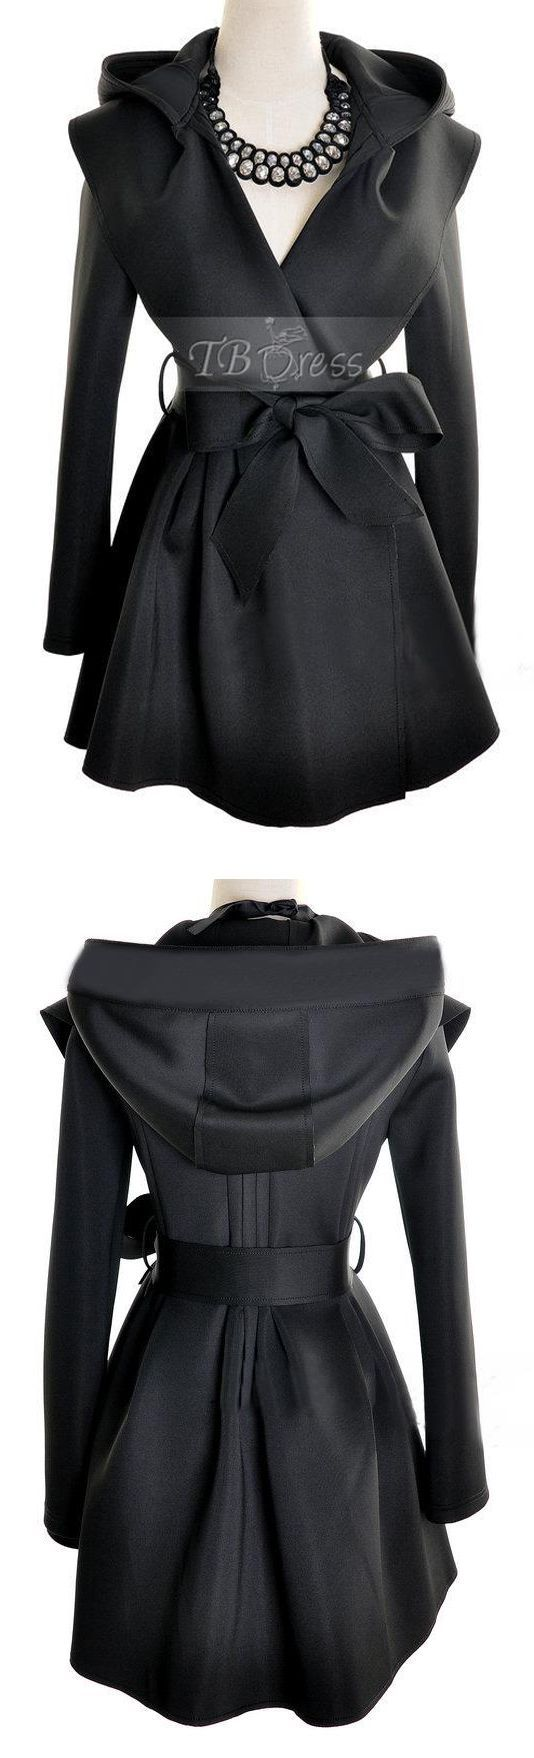 Vogue Style Pure Color Hooded Long Cotton Trench Coat http://www.tbdress.com/product/Vogue-Japanese-Style-Pure-Color-Hooded-Long-Cotton-Trench-Coat-10704854.html